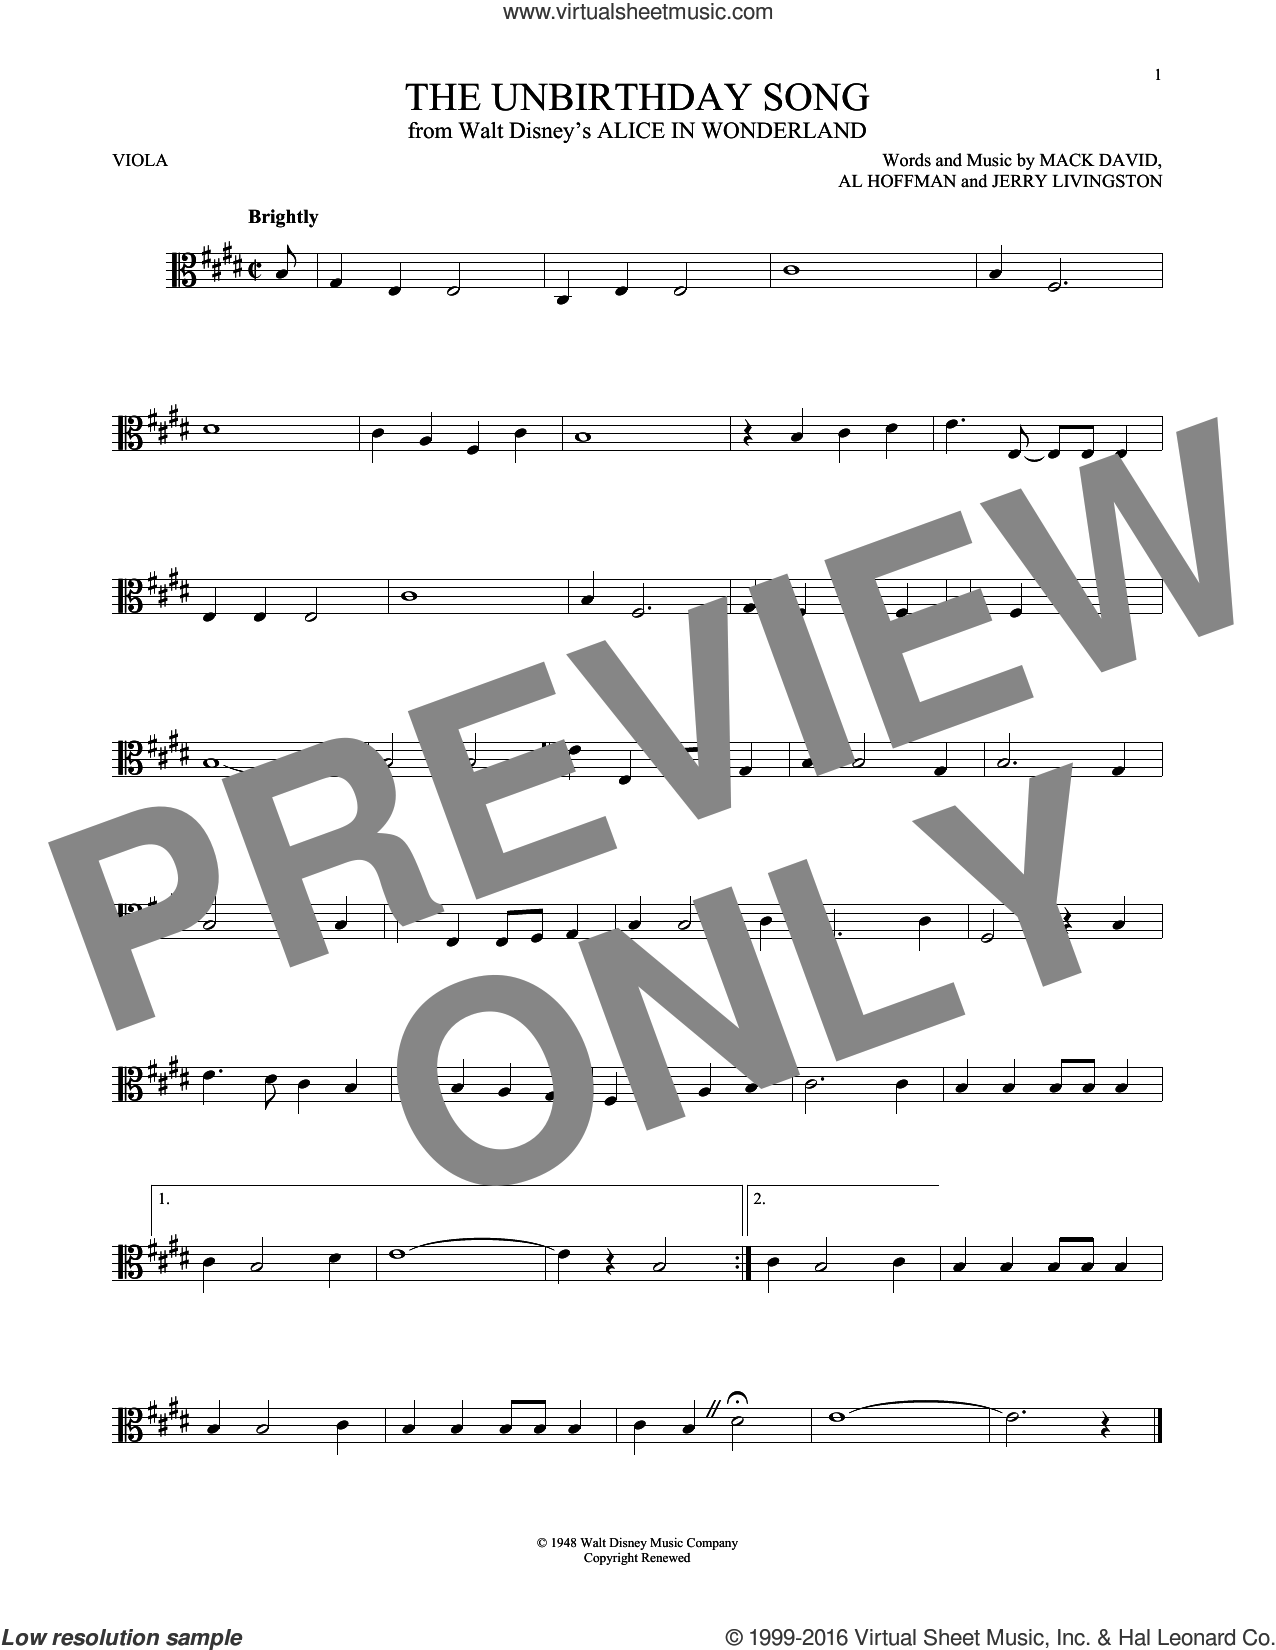 The Unbirthday Song sheet music for viola solo by Al Hoffman, Jerry Livingston, Mack David and Mack David, Al Hoffman and Jerry Livingston, intermediate skill level